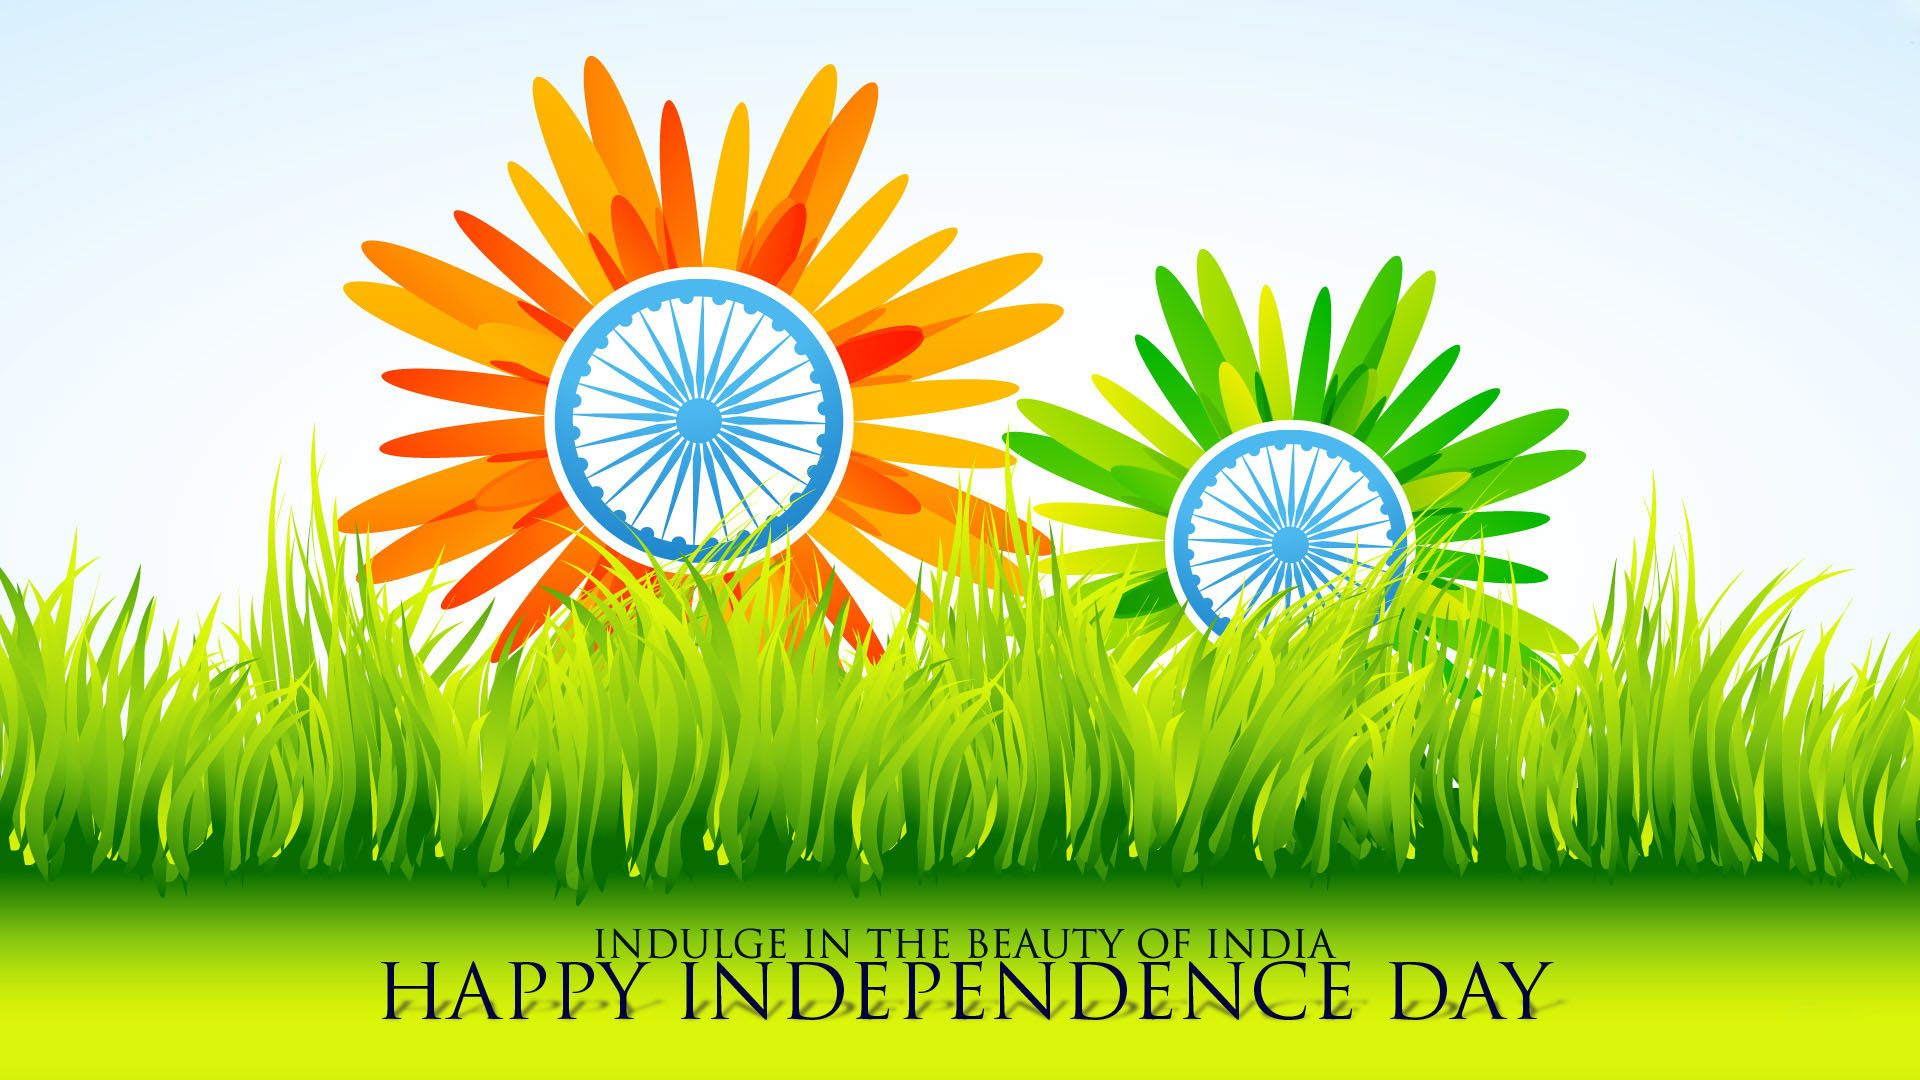 Very Happy Independence Day Beautiful Images Independence Day Hd Wallpaper Independence Day Wallpaper Independence Day Images